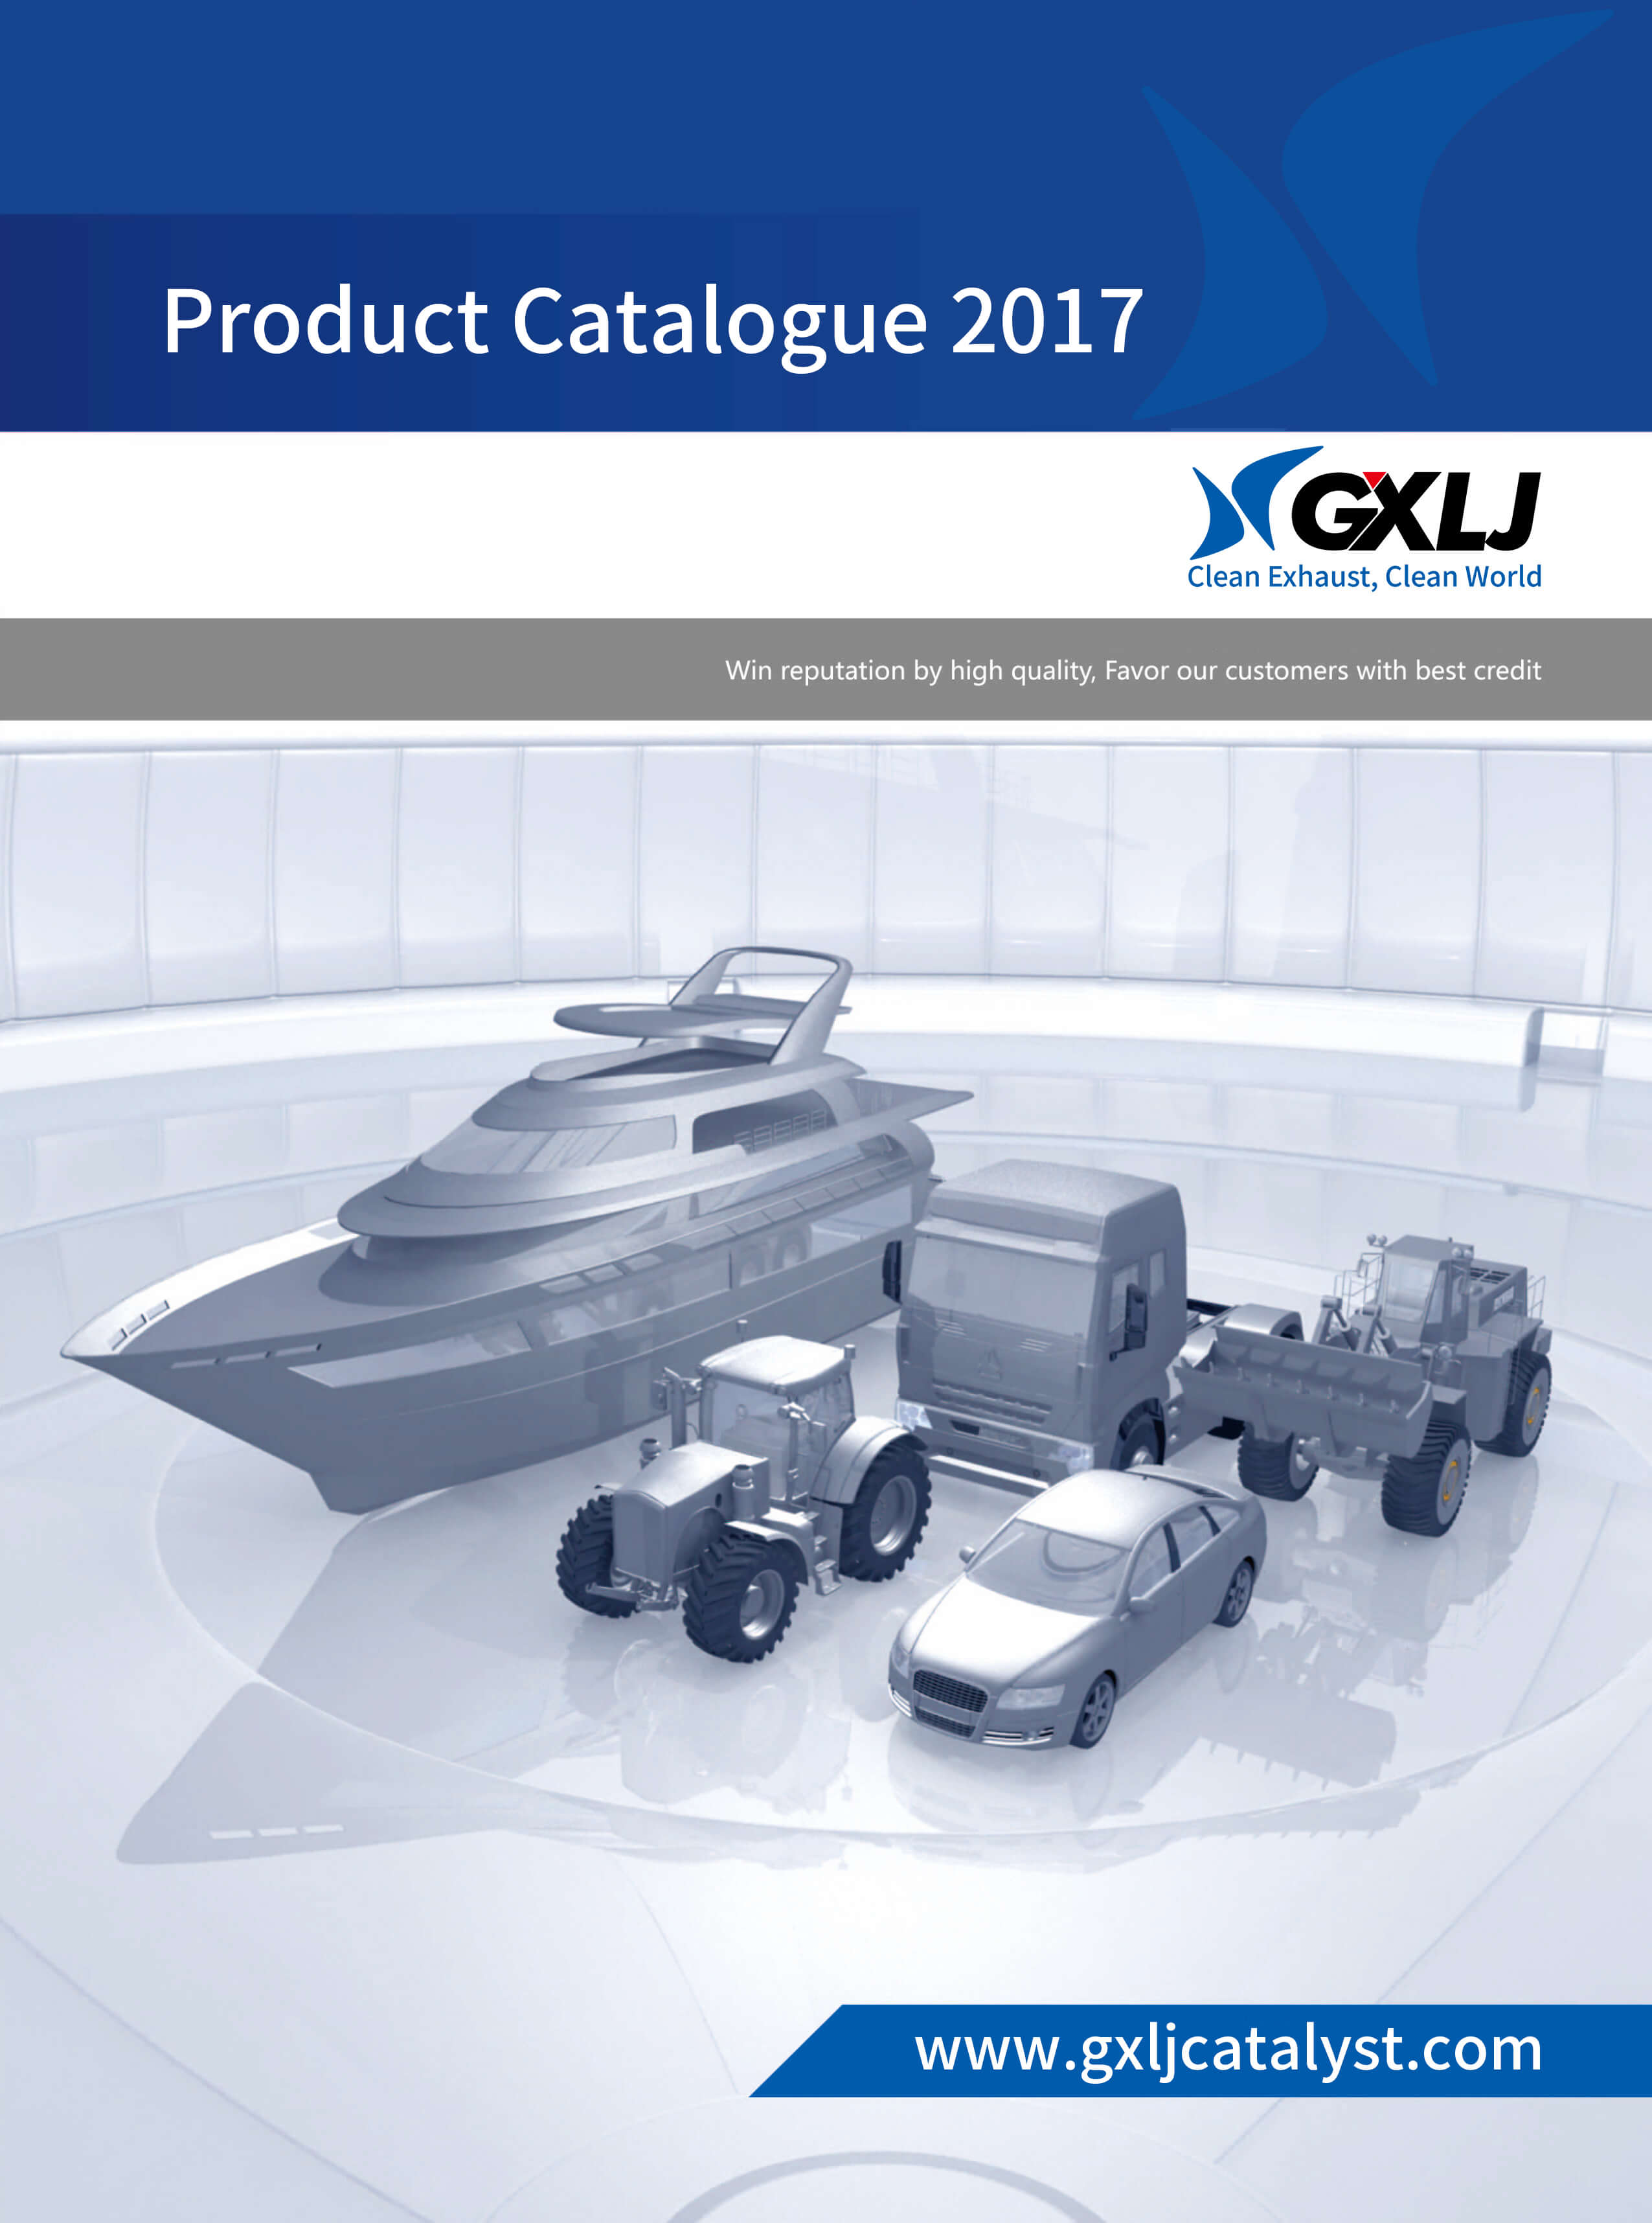 E-catalogue from GXLJ 2017 version